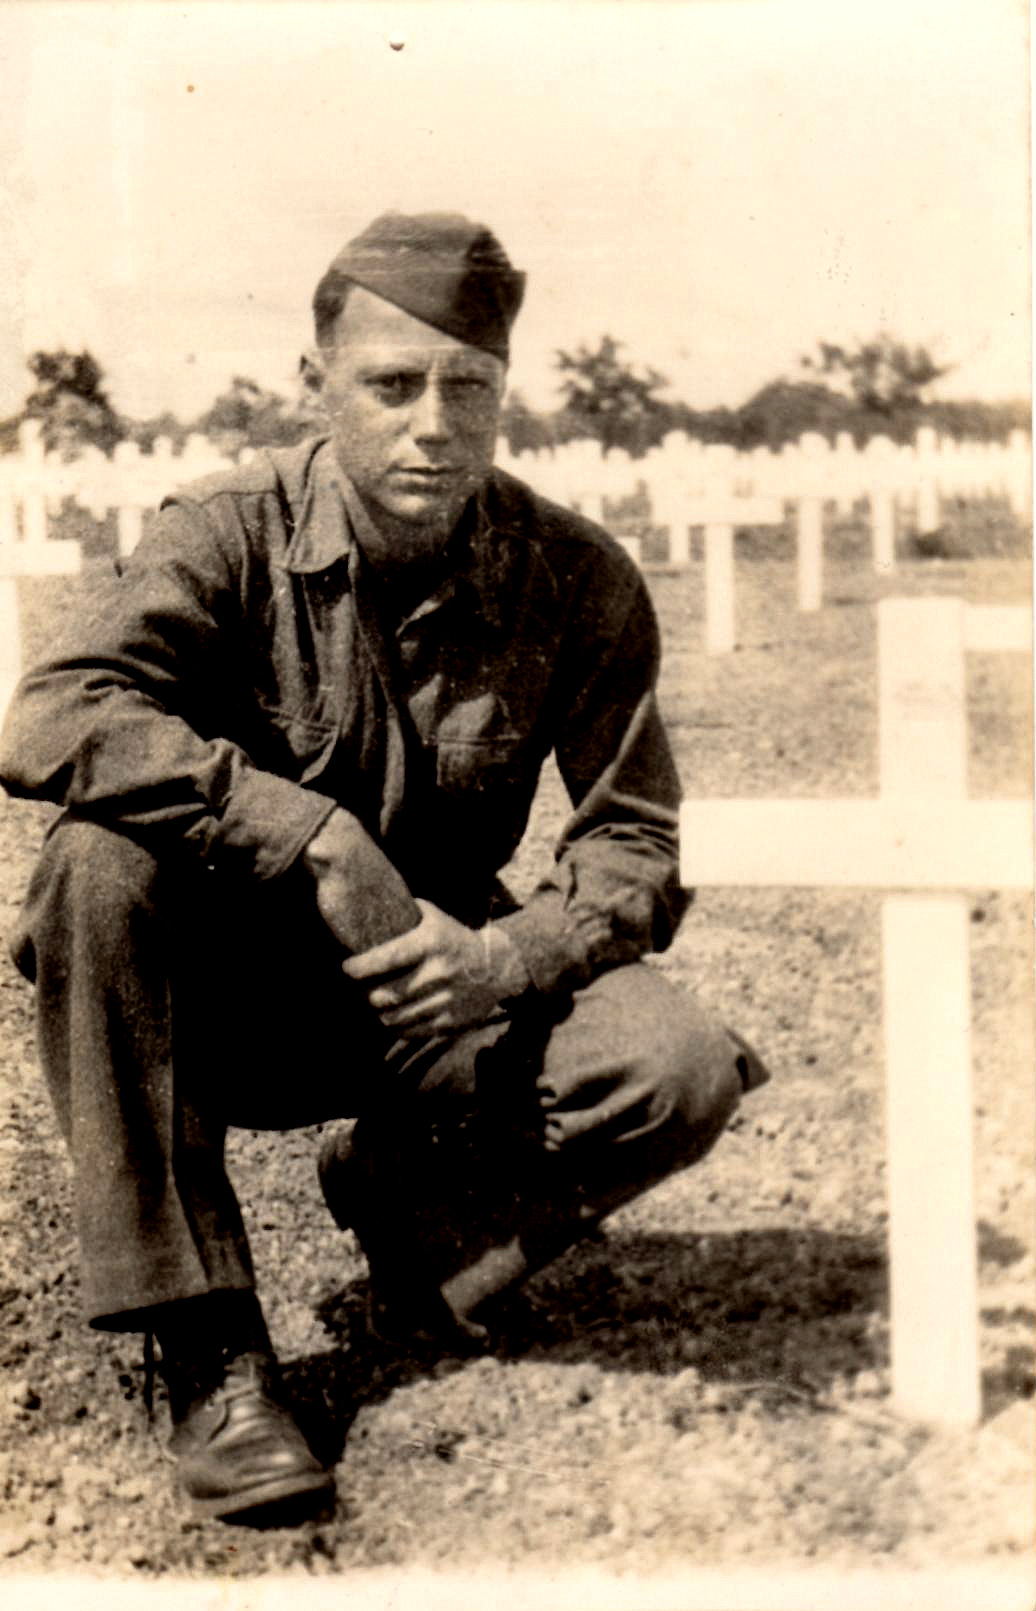 My Grandfather at the grave of his 19-year-old brother, Tommy. France, 1944.